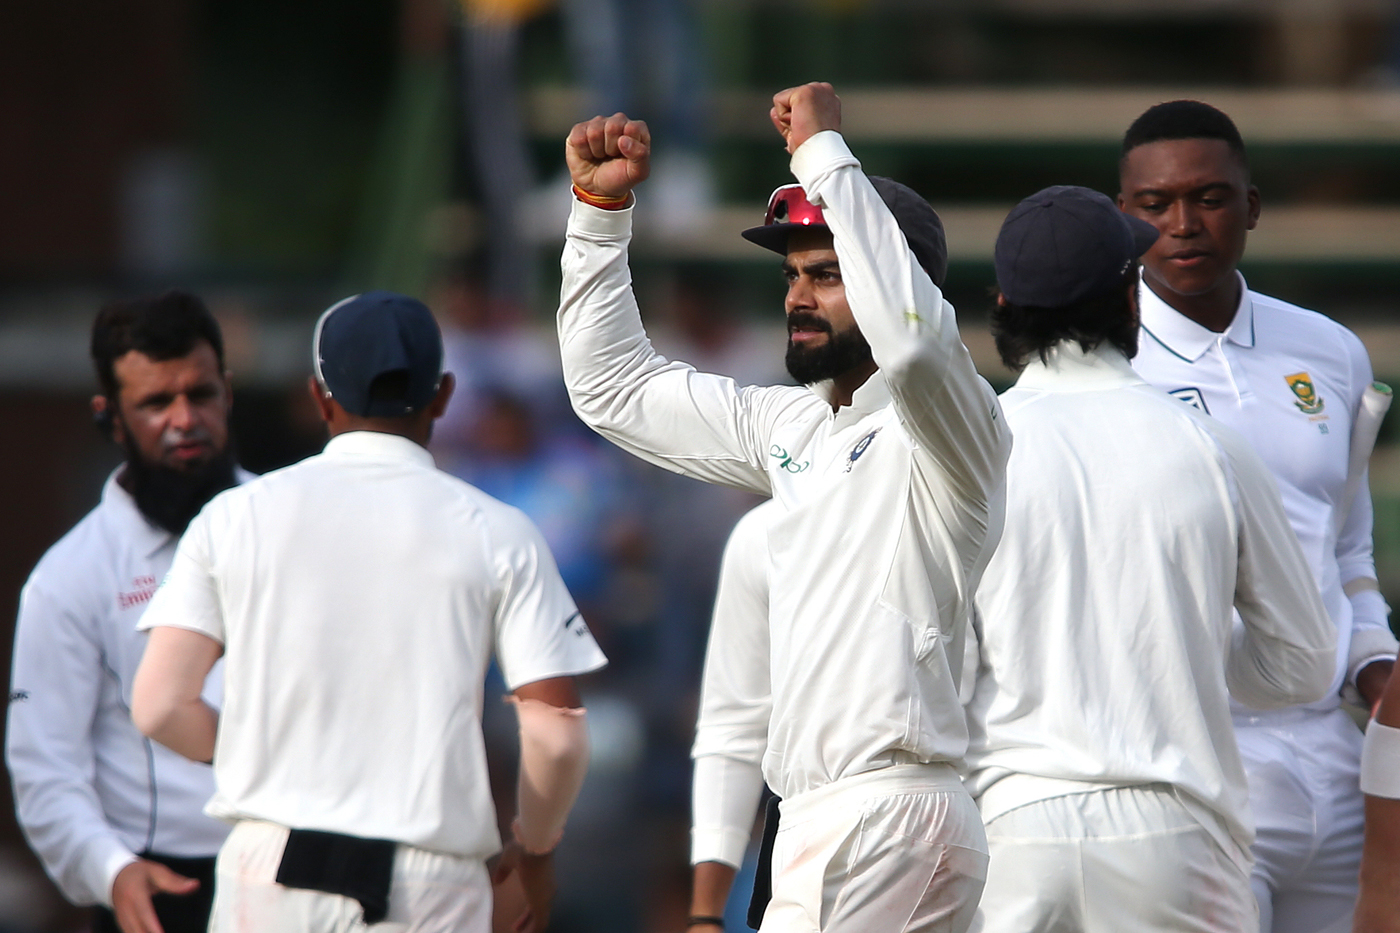 ENG Vs IND 2018: Dale Steyn Reckons 'Advantage' is With England in Tests